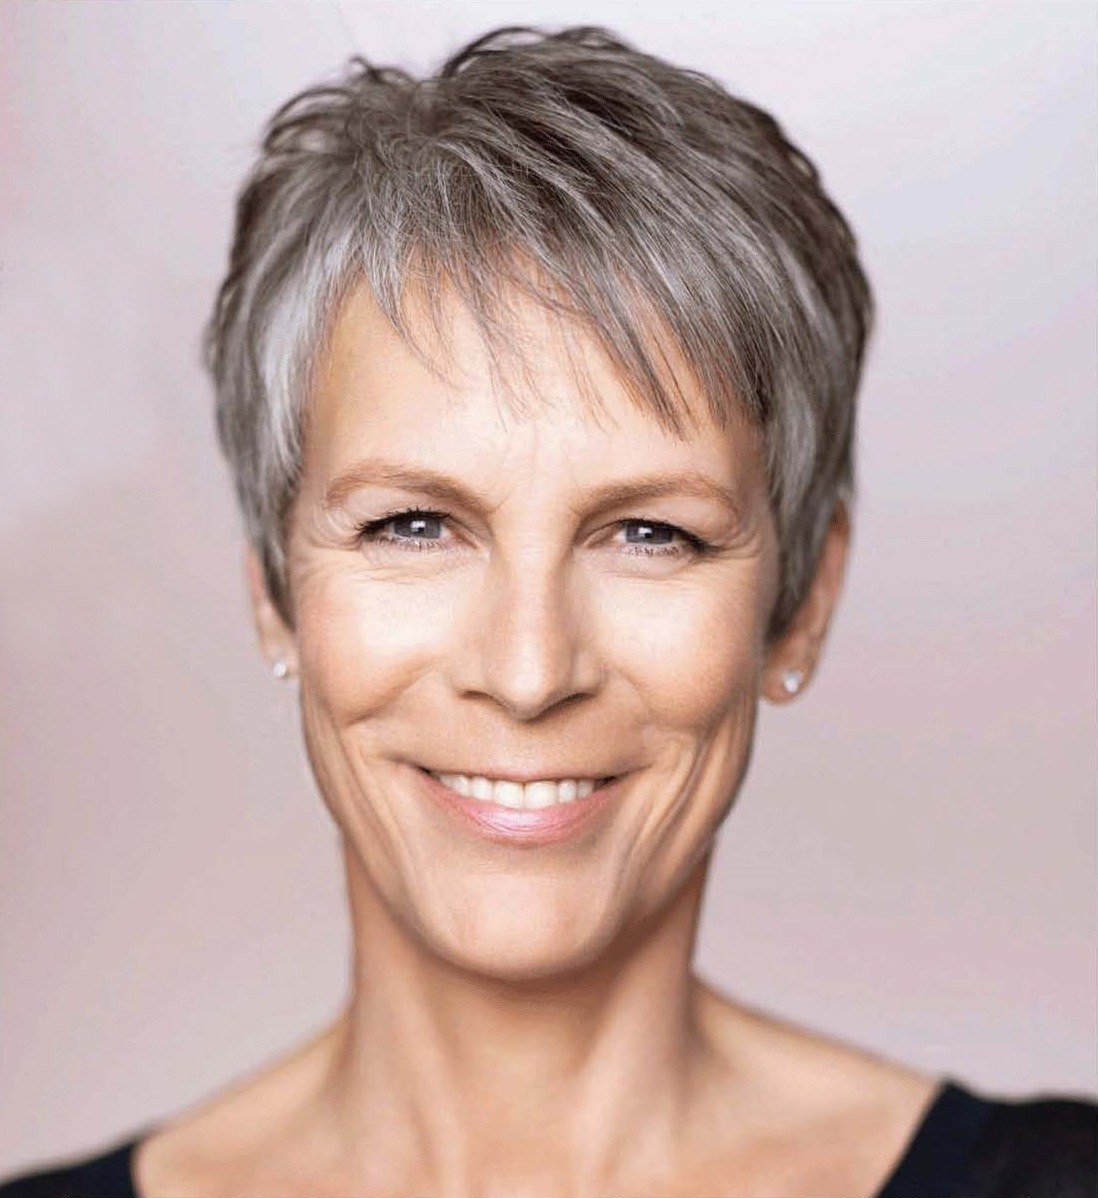 Jamie Lee Curtis Hairstyle Ideas for Women title=